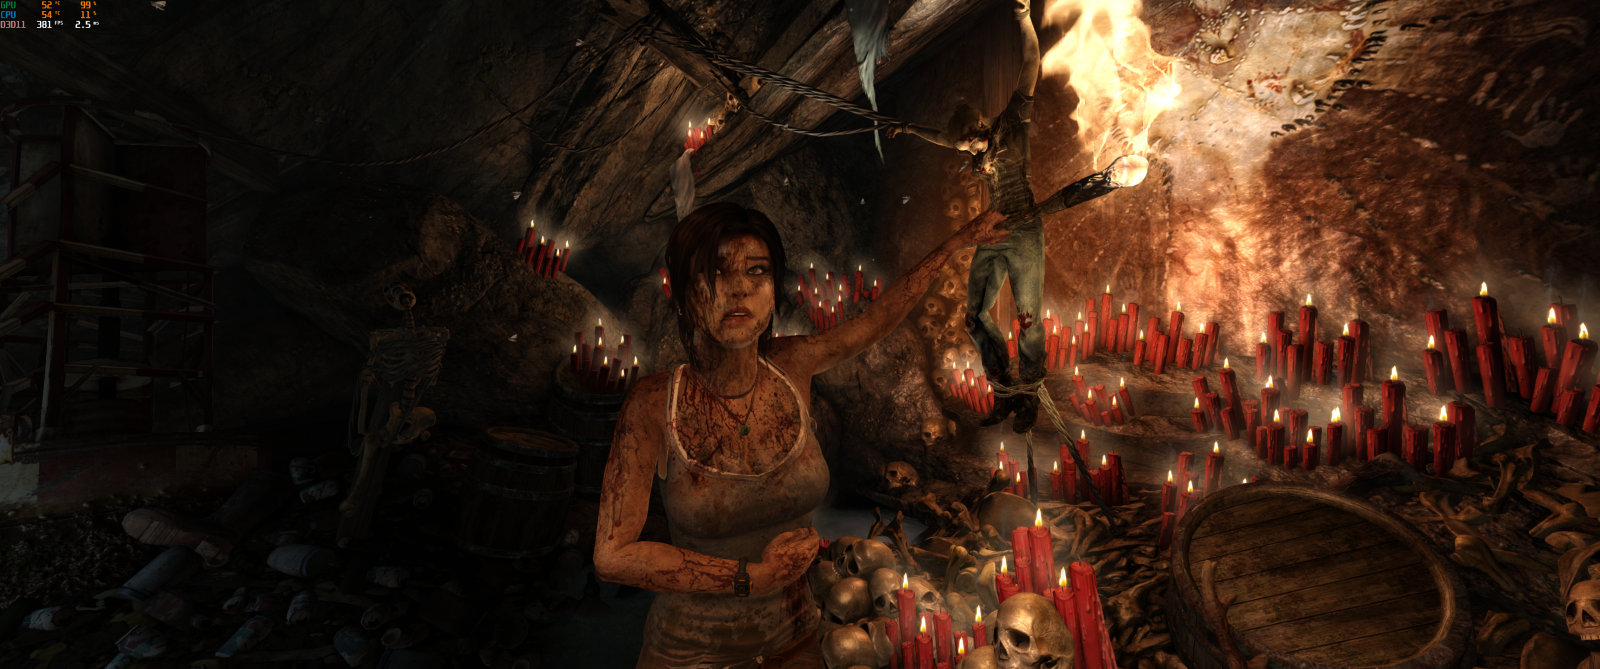 TombRaider_2021_06_25_21_16_57_091.png